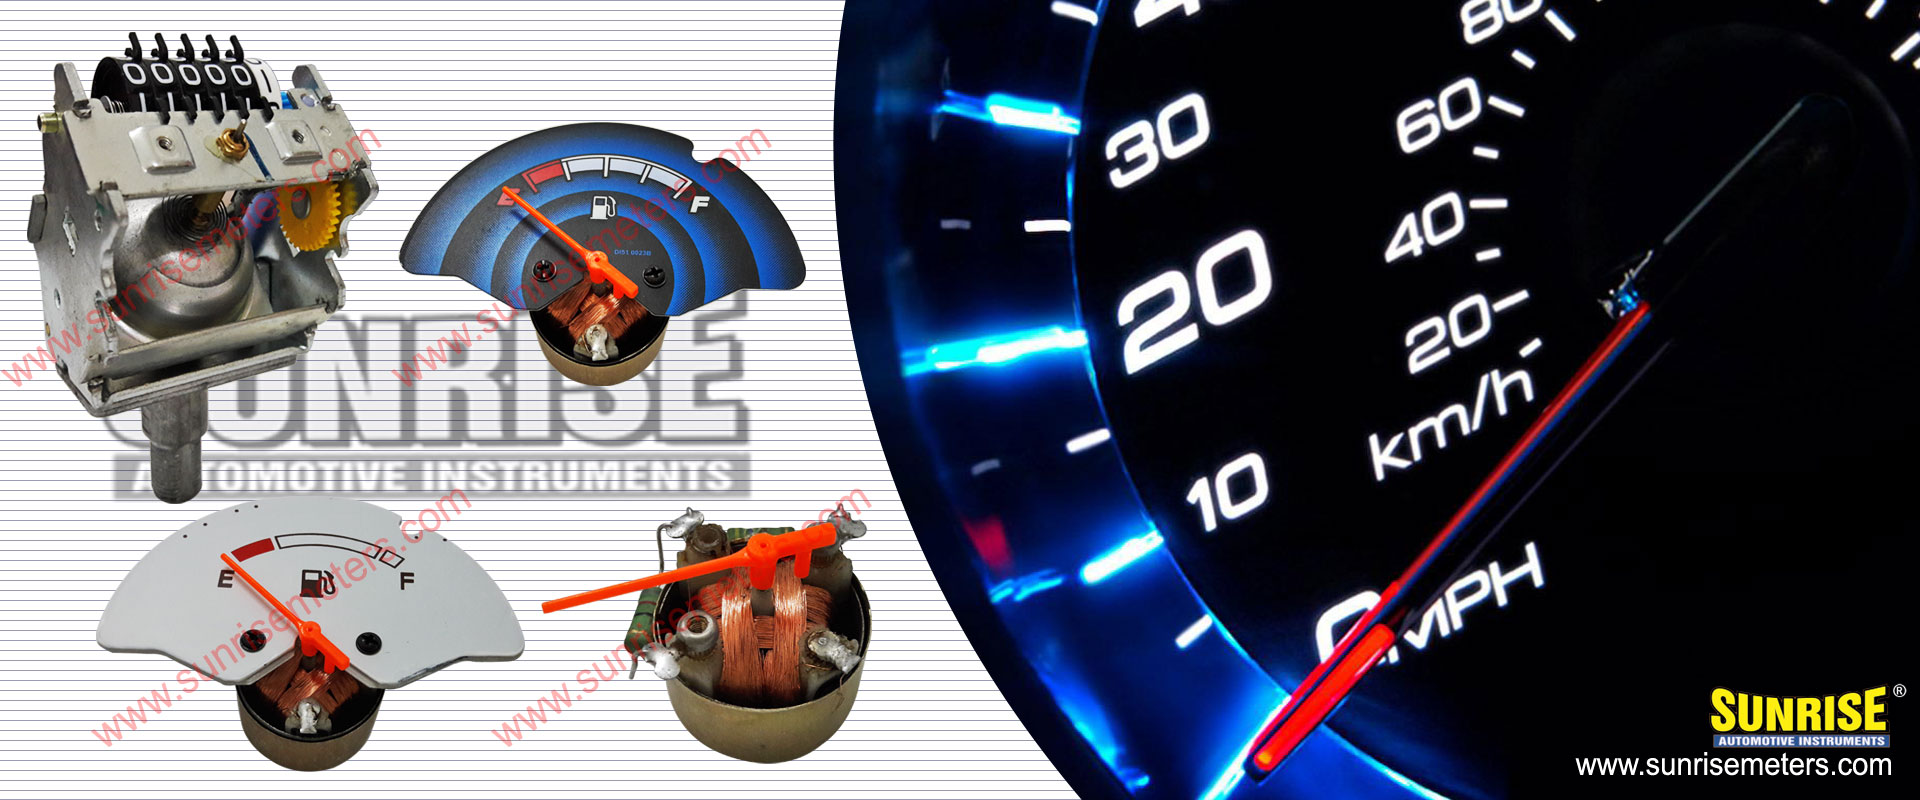 fuel gauge speedo meters moments hero honda bajaj tvs yamaha speedo meters manufacturers suppliers in india punjab ludhiana